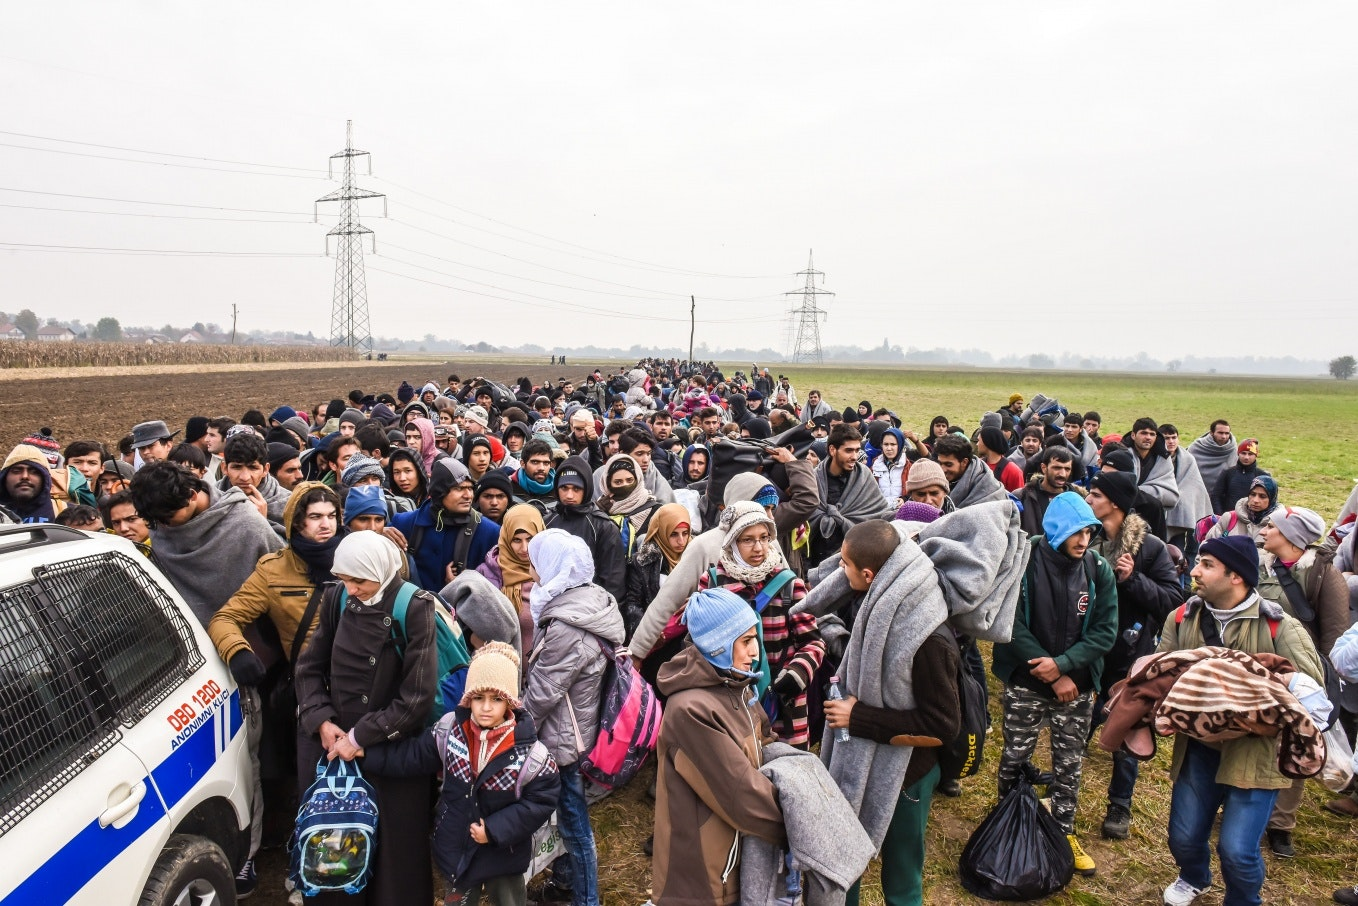 A large group of refugees